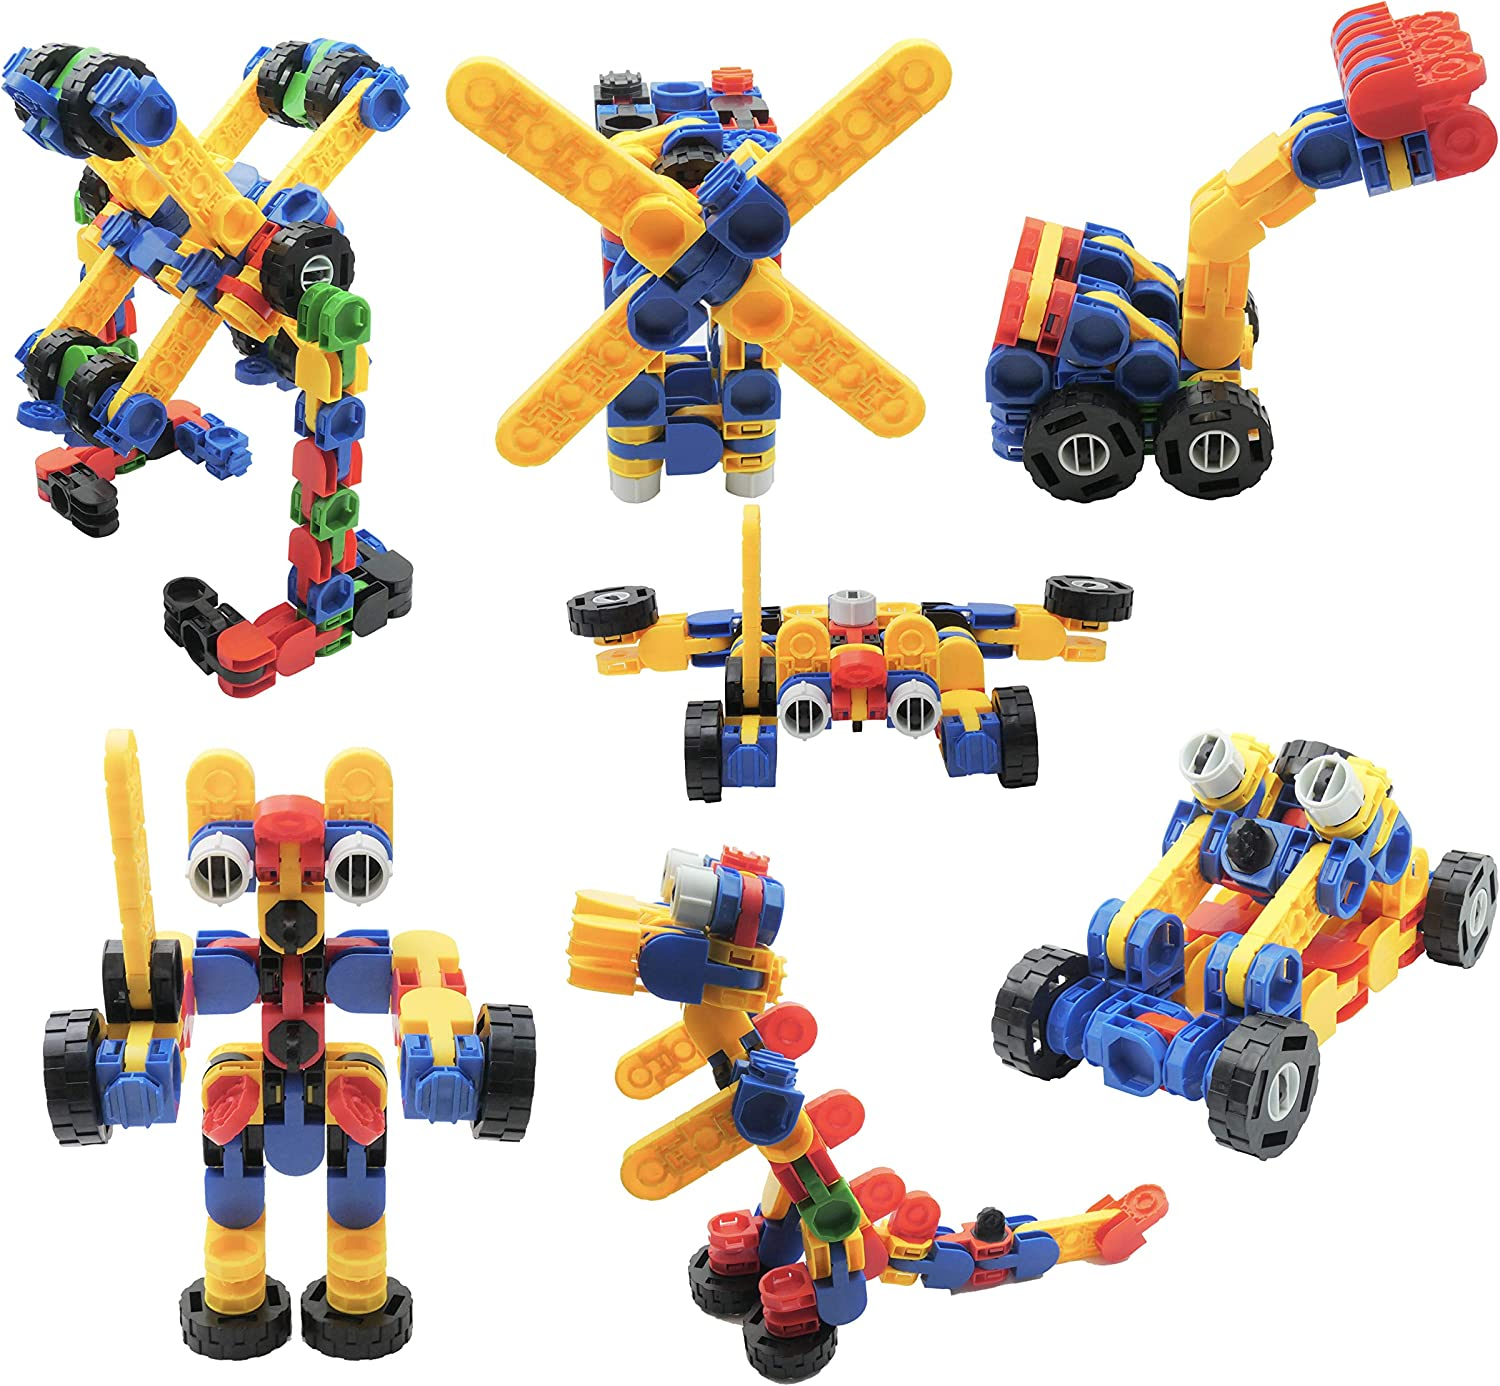 Skoolzy Klikio STEM Toys Kit. Creative Building Blocks Educational Construction 98 Pc Learning Games Set. Ages 3 4 5 6 7 8 9 10 Year Old Boys or Girls Tinker Activity. Best Birthday Gift Kids Toy